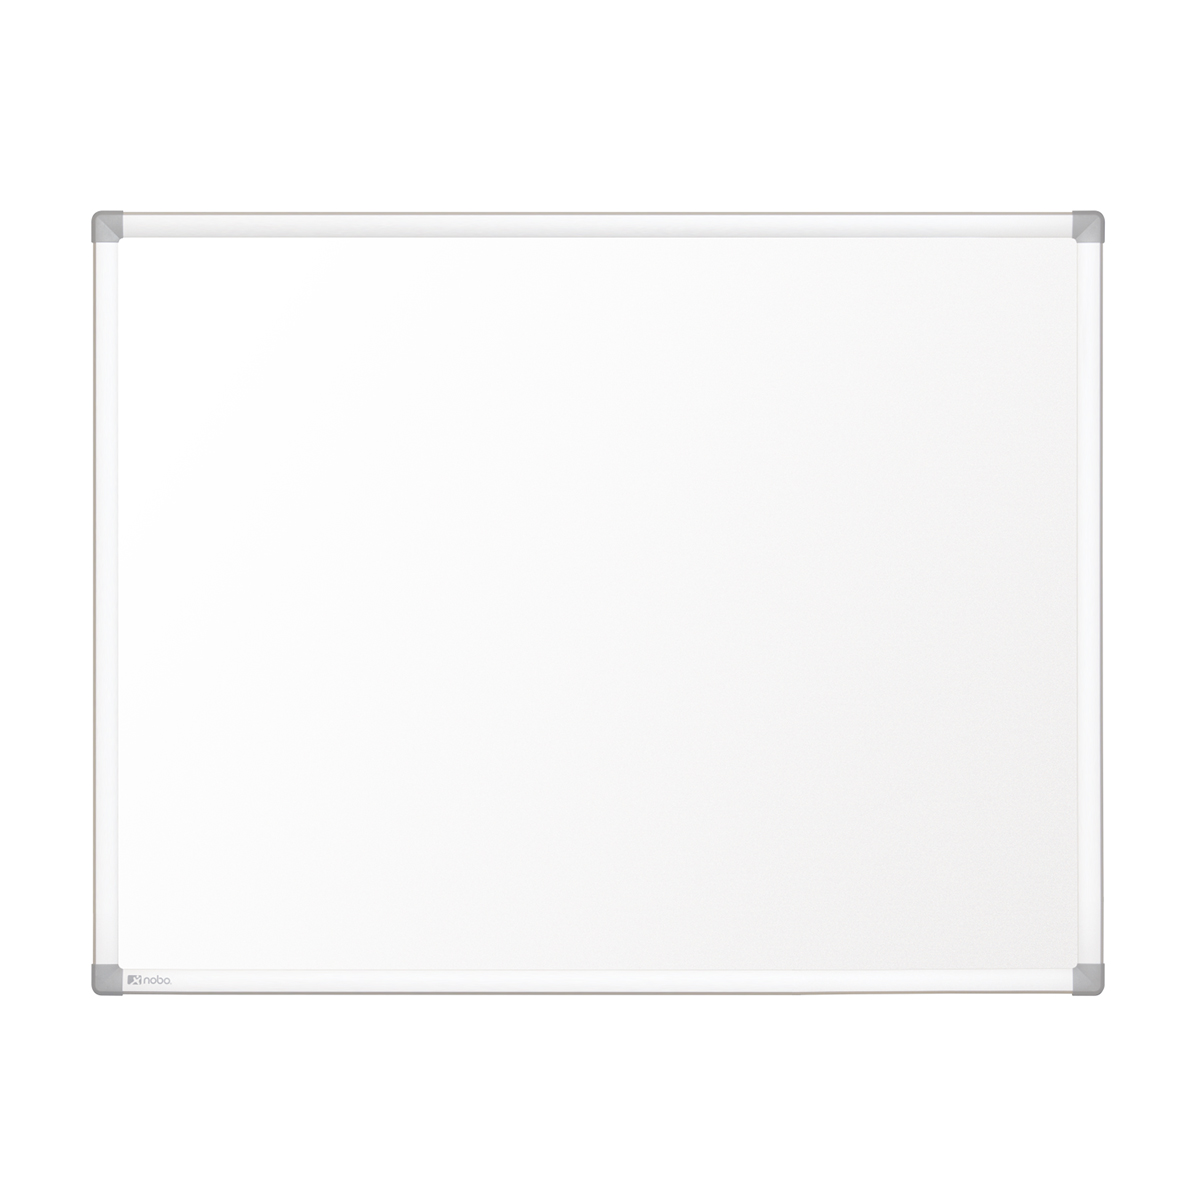 Nobo 1905221 Prestige Enamel Magnetic Whiteboard 1200 x 900mm